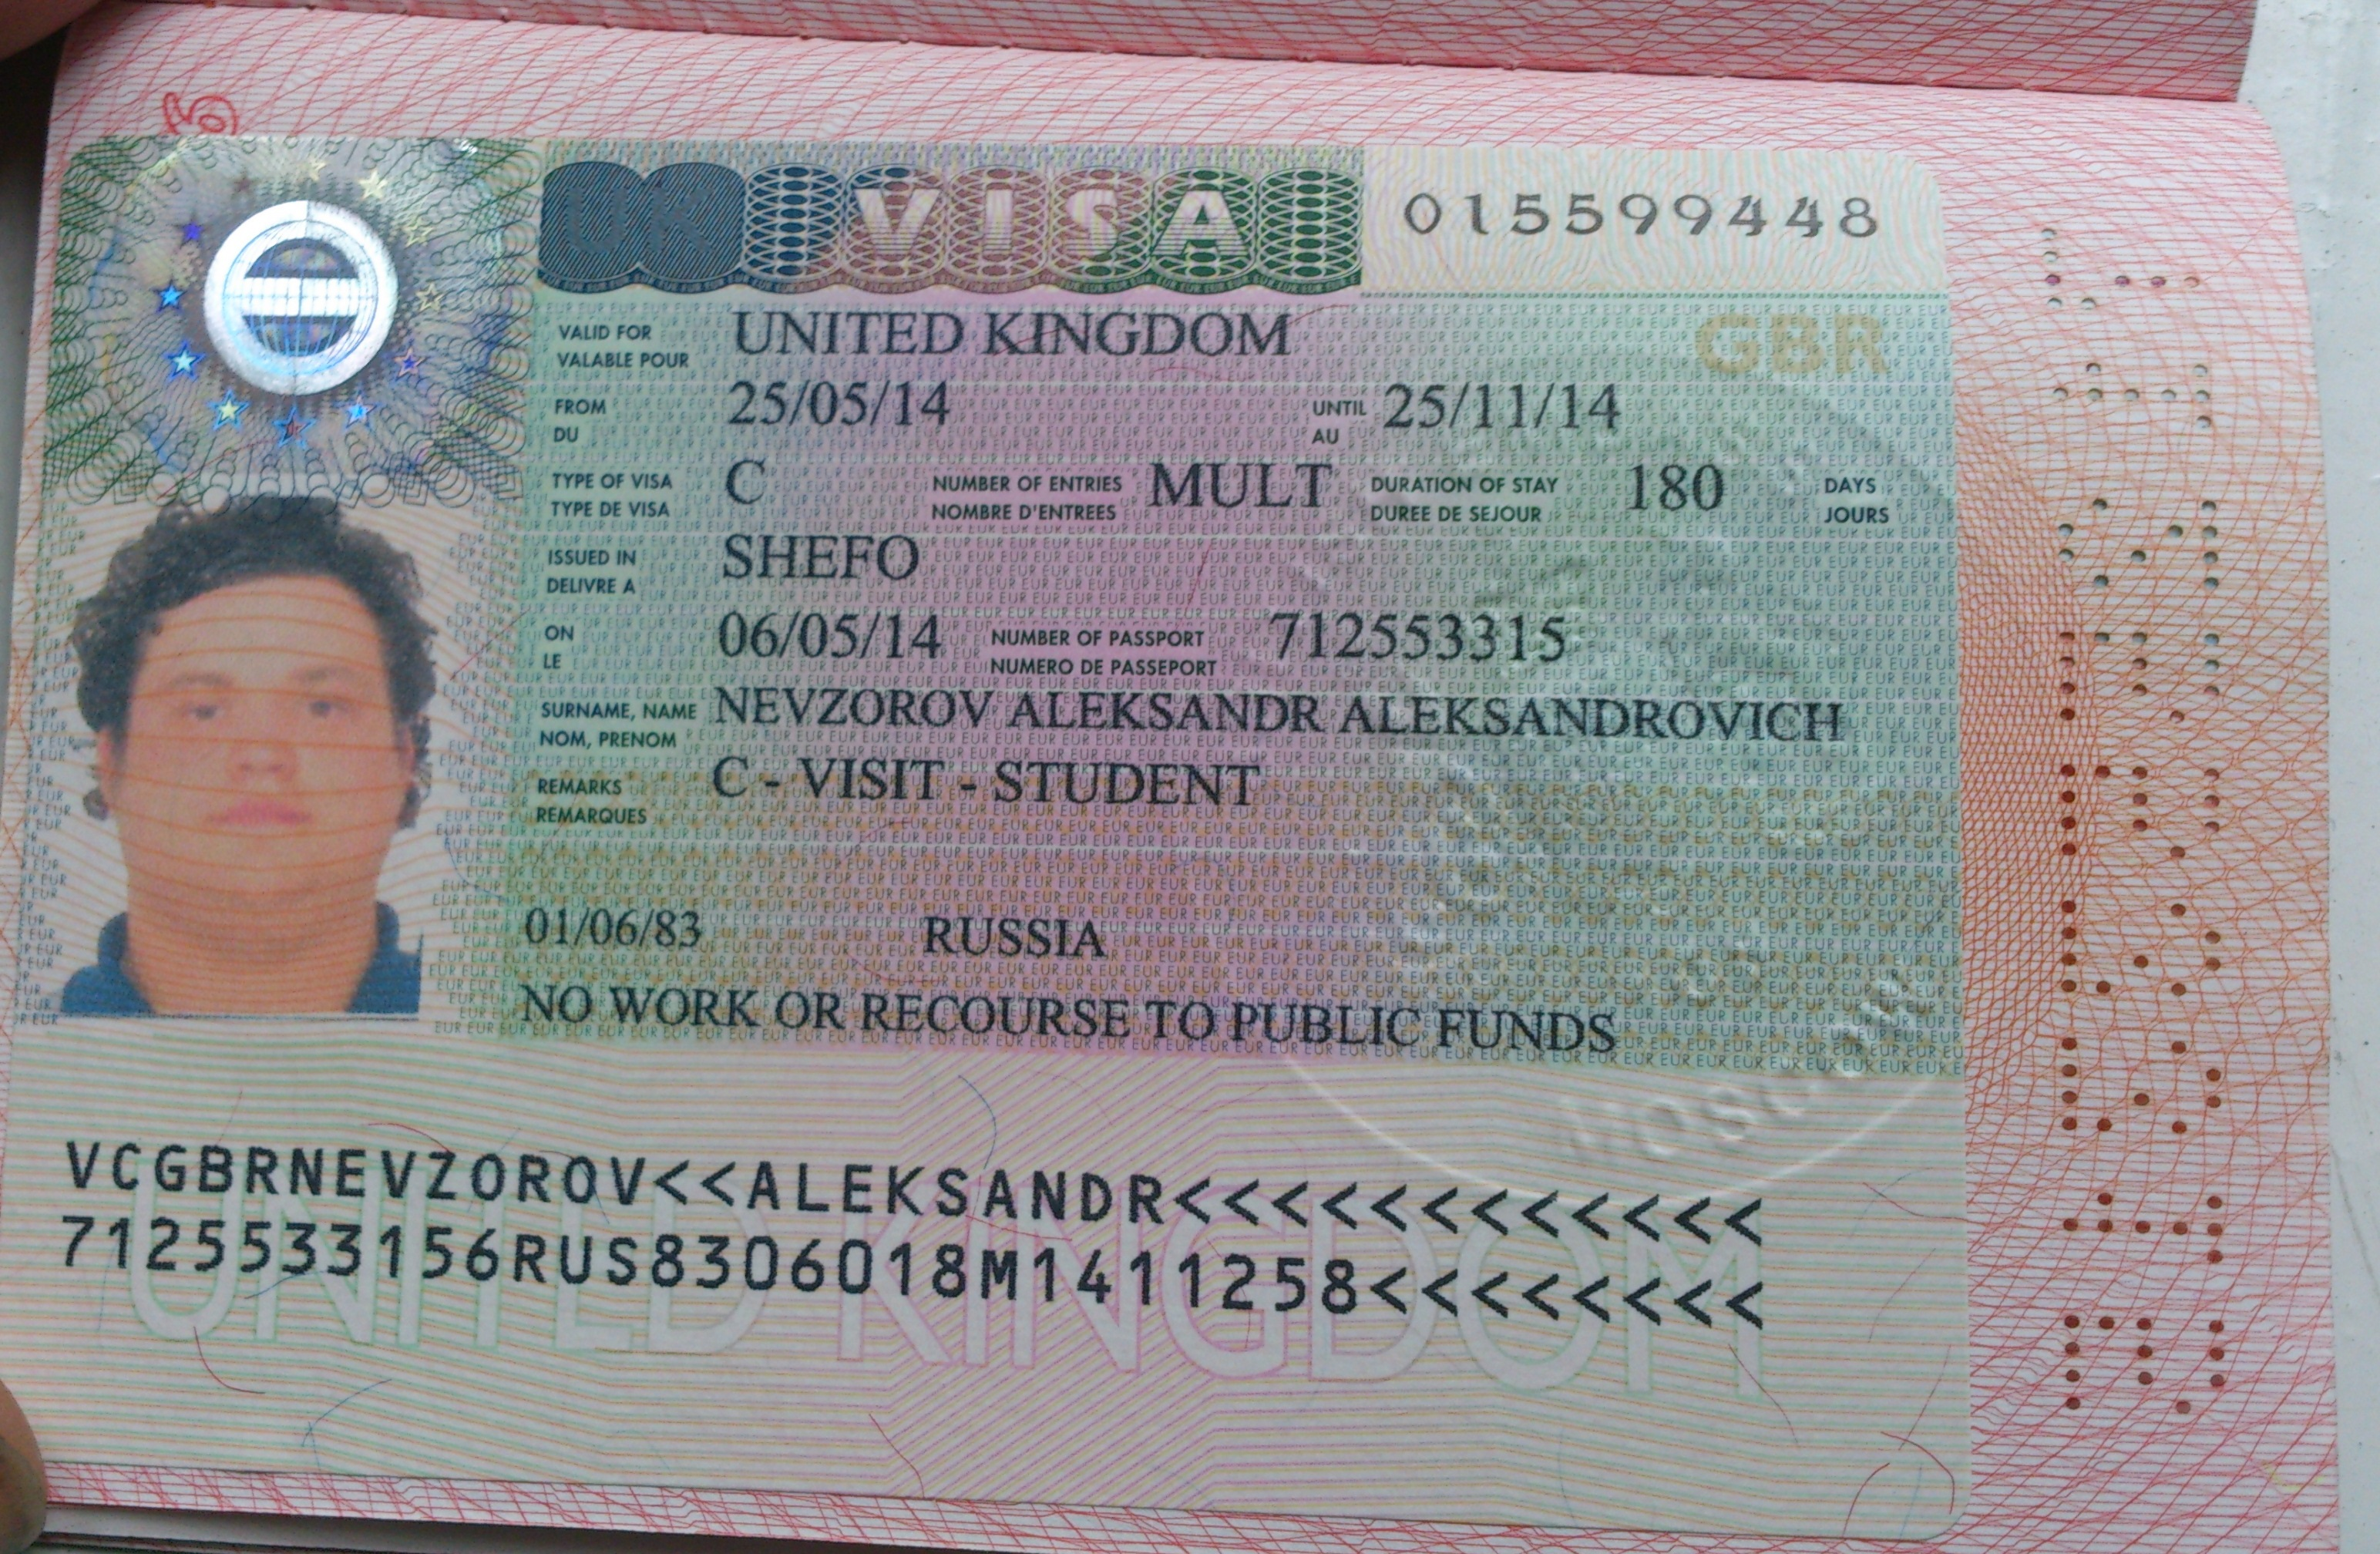 The Uk Visa In A Russian Students Passport